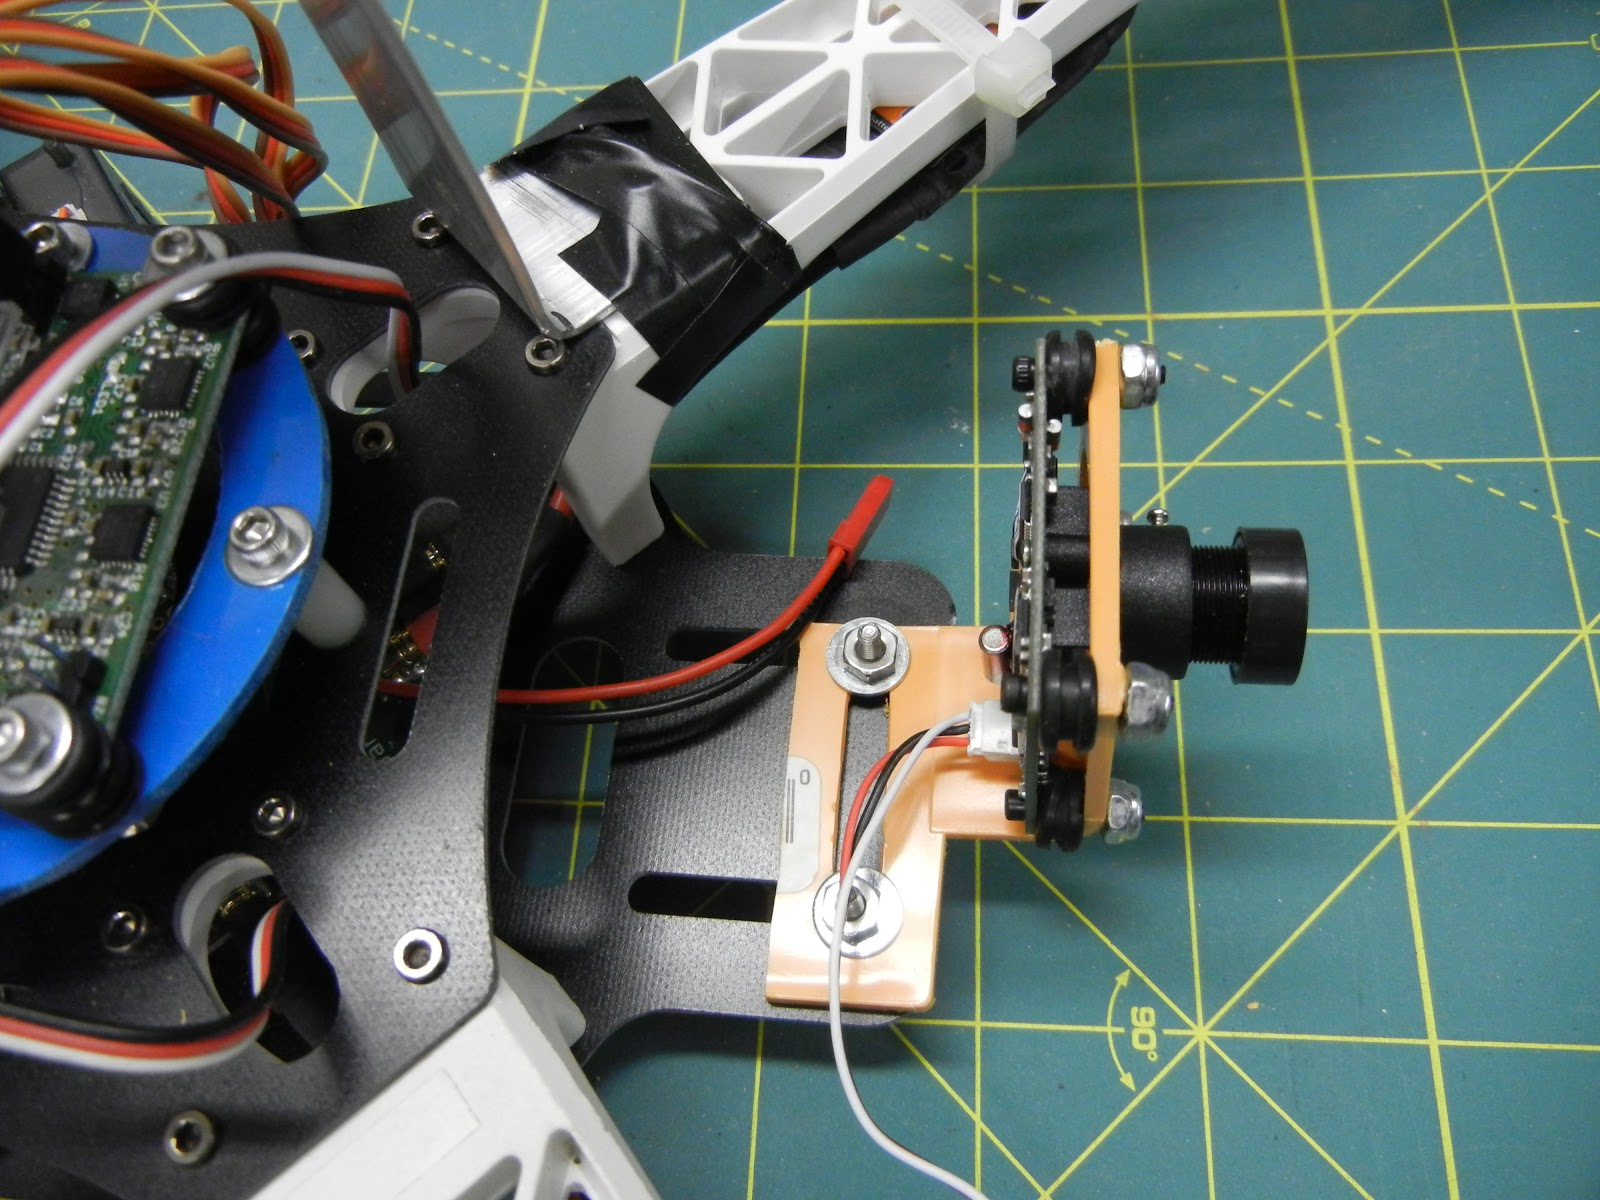 Buildin Projects FPV Goes Live